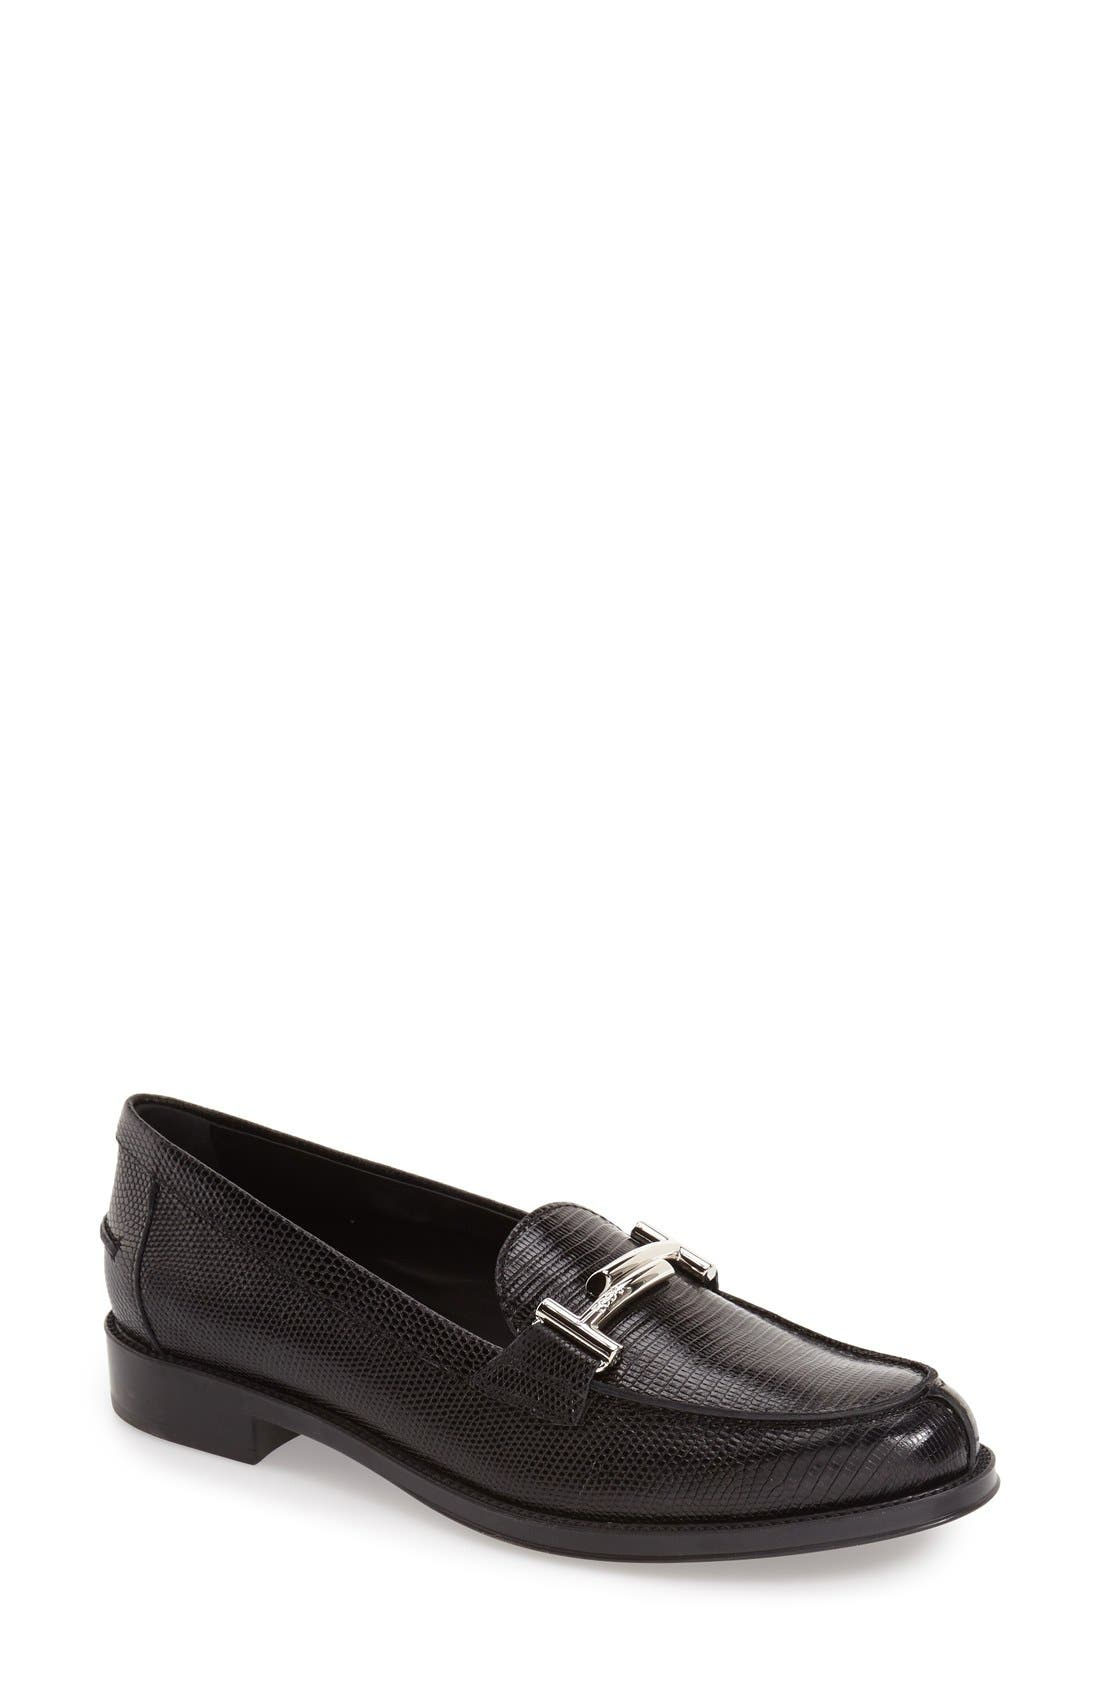 'Double T' Loafer,                             Main thumbnail 1, color,                             001